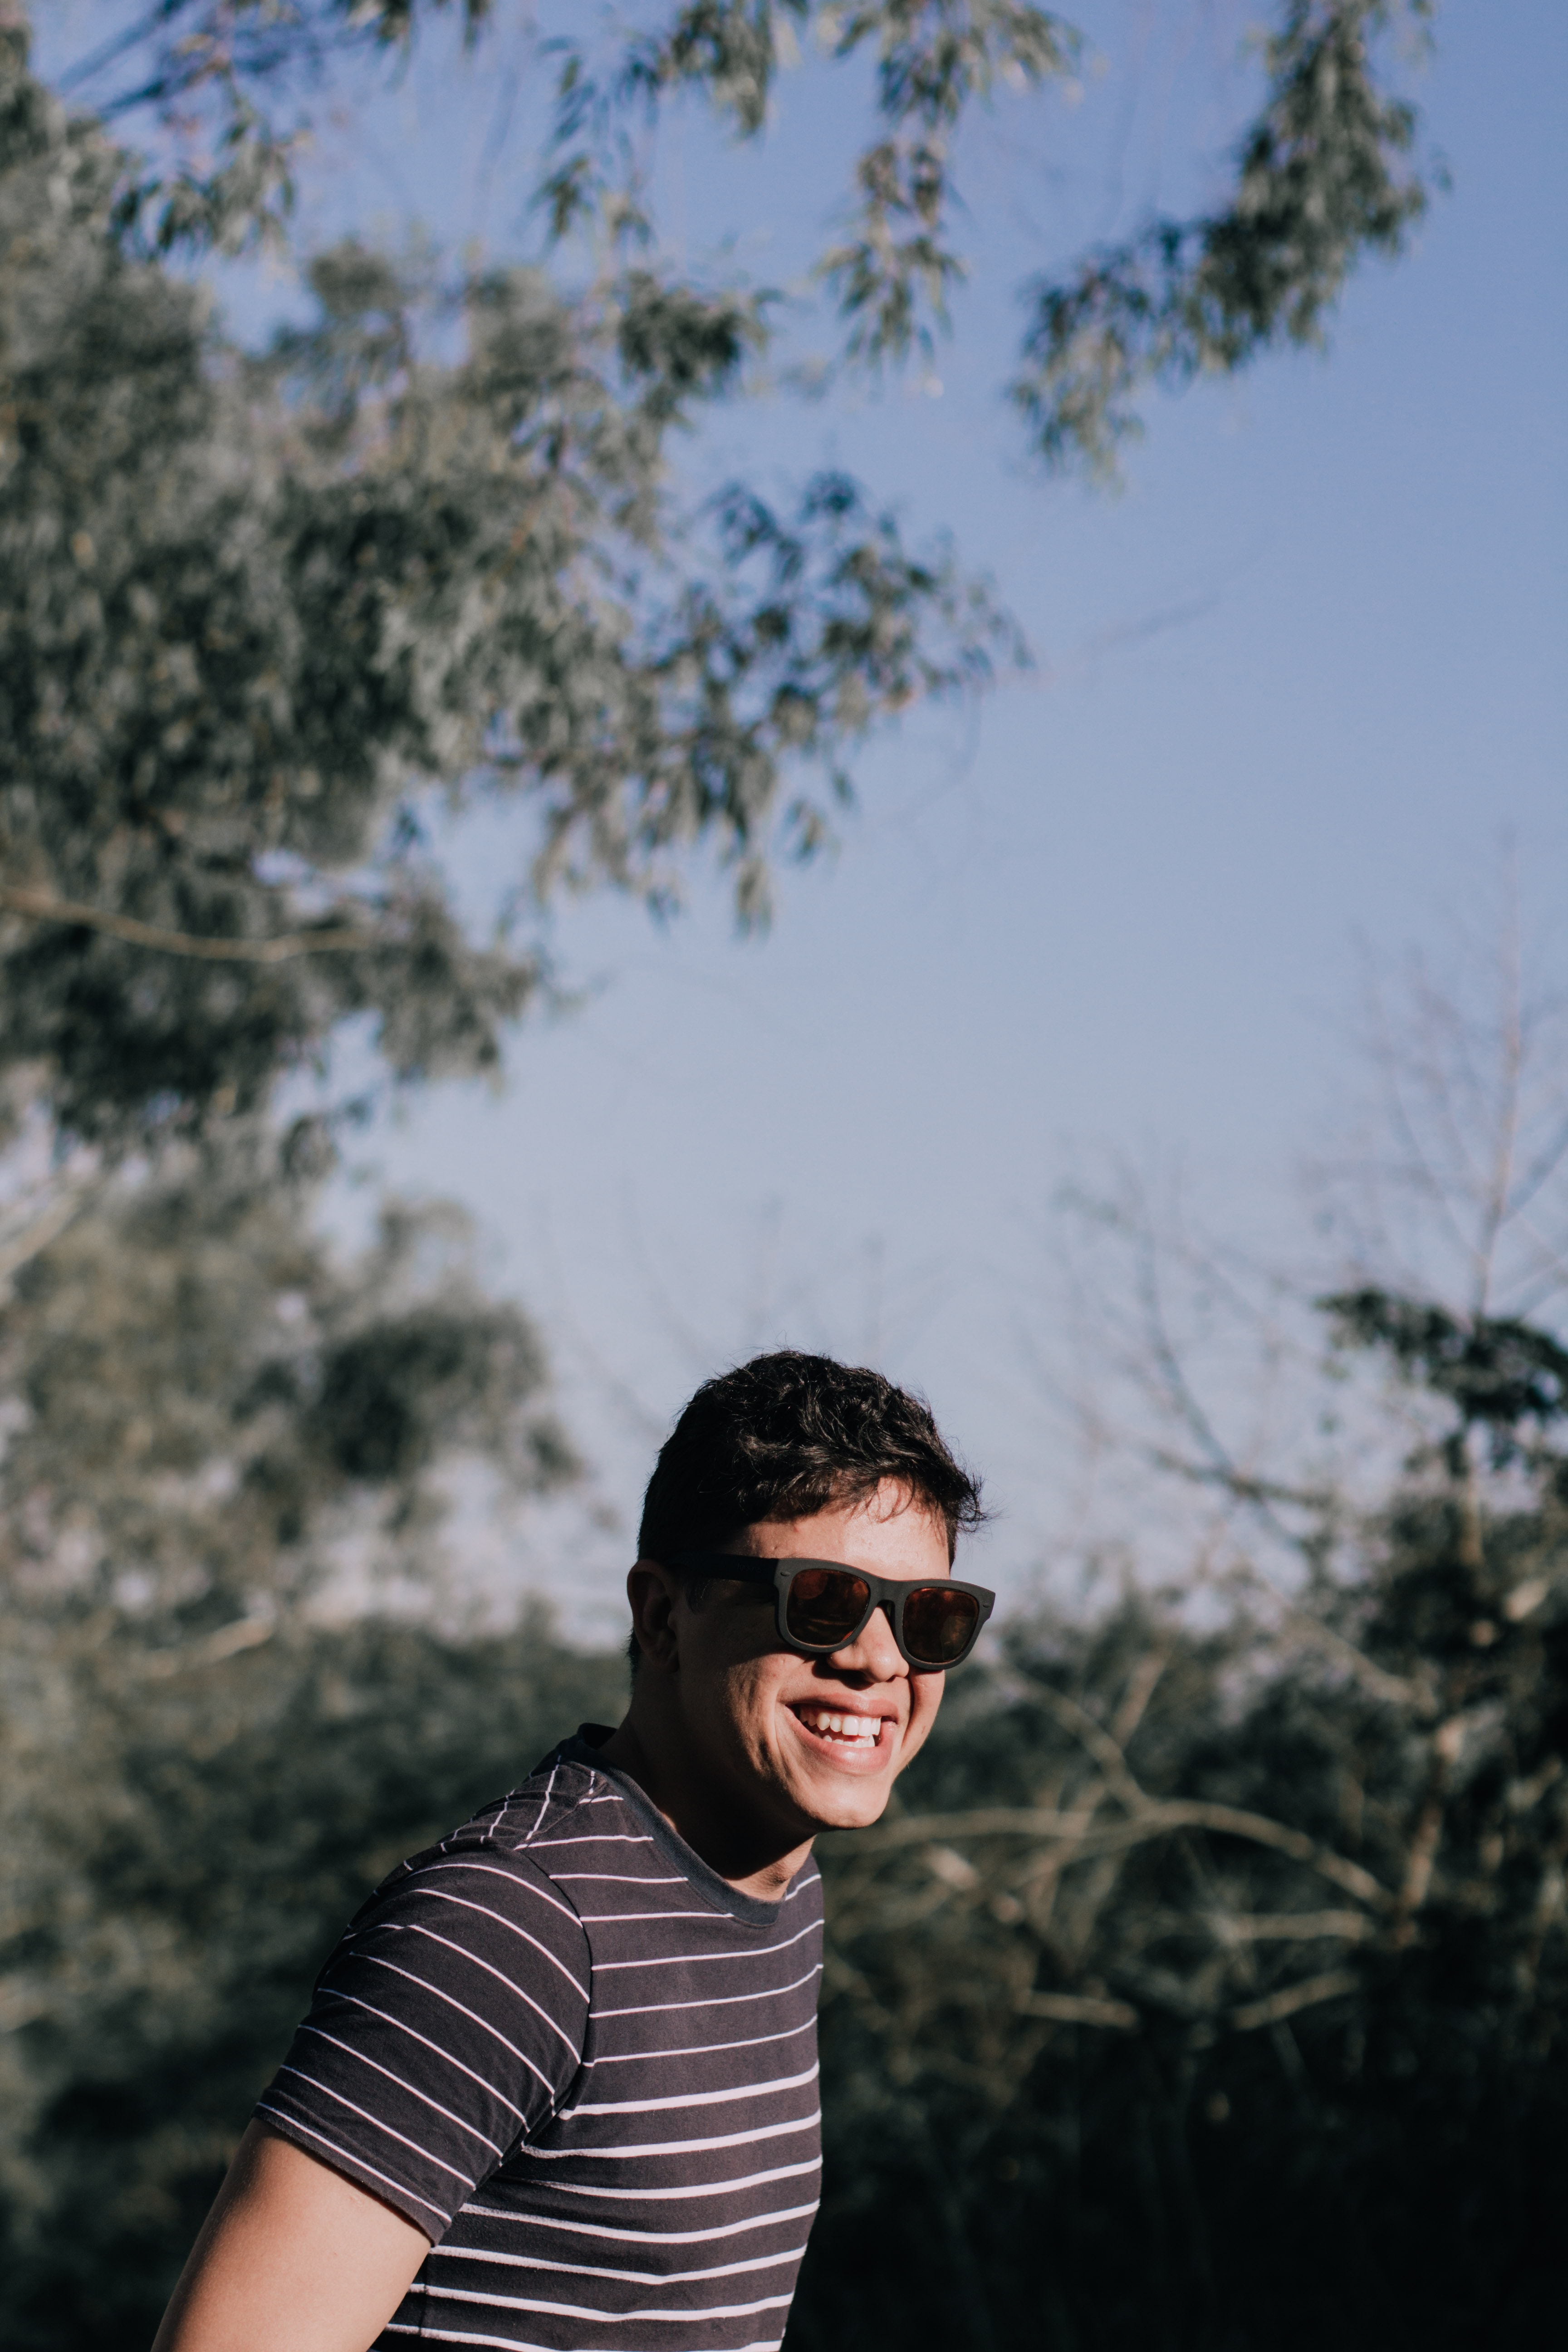 selective focus photography of man smiling while standing near trees